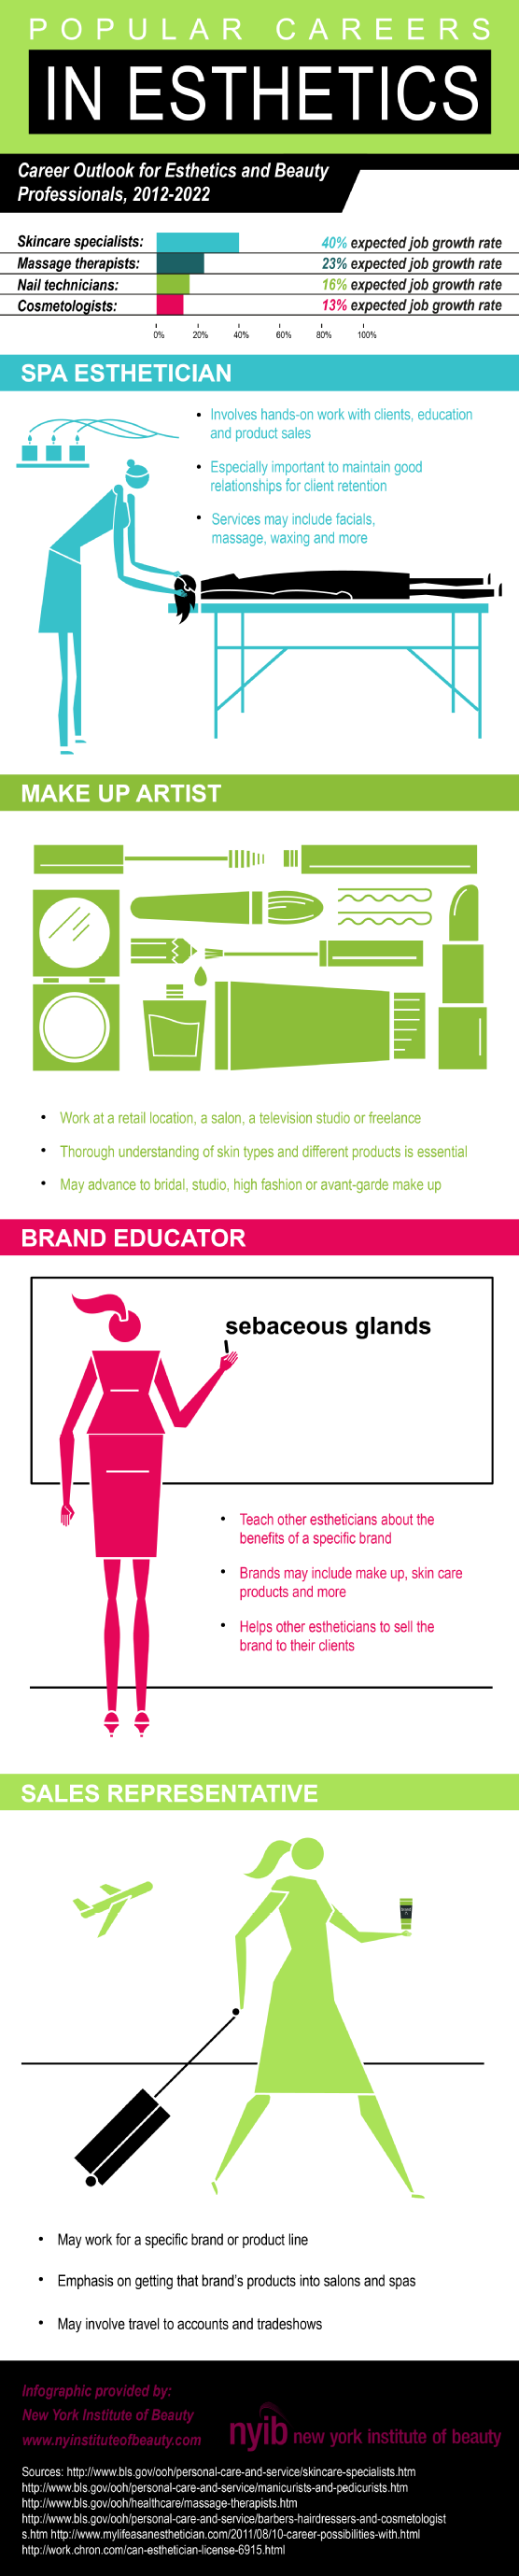 Infographic: Popular Careers in Esthetics [Infographic]